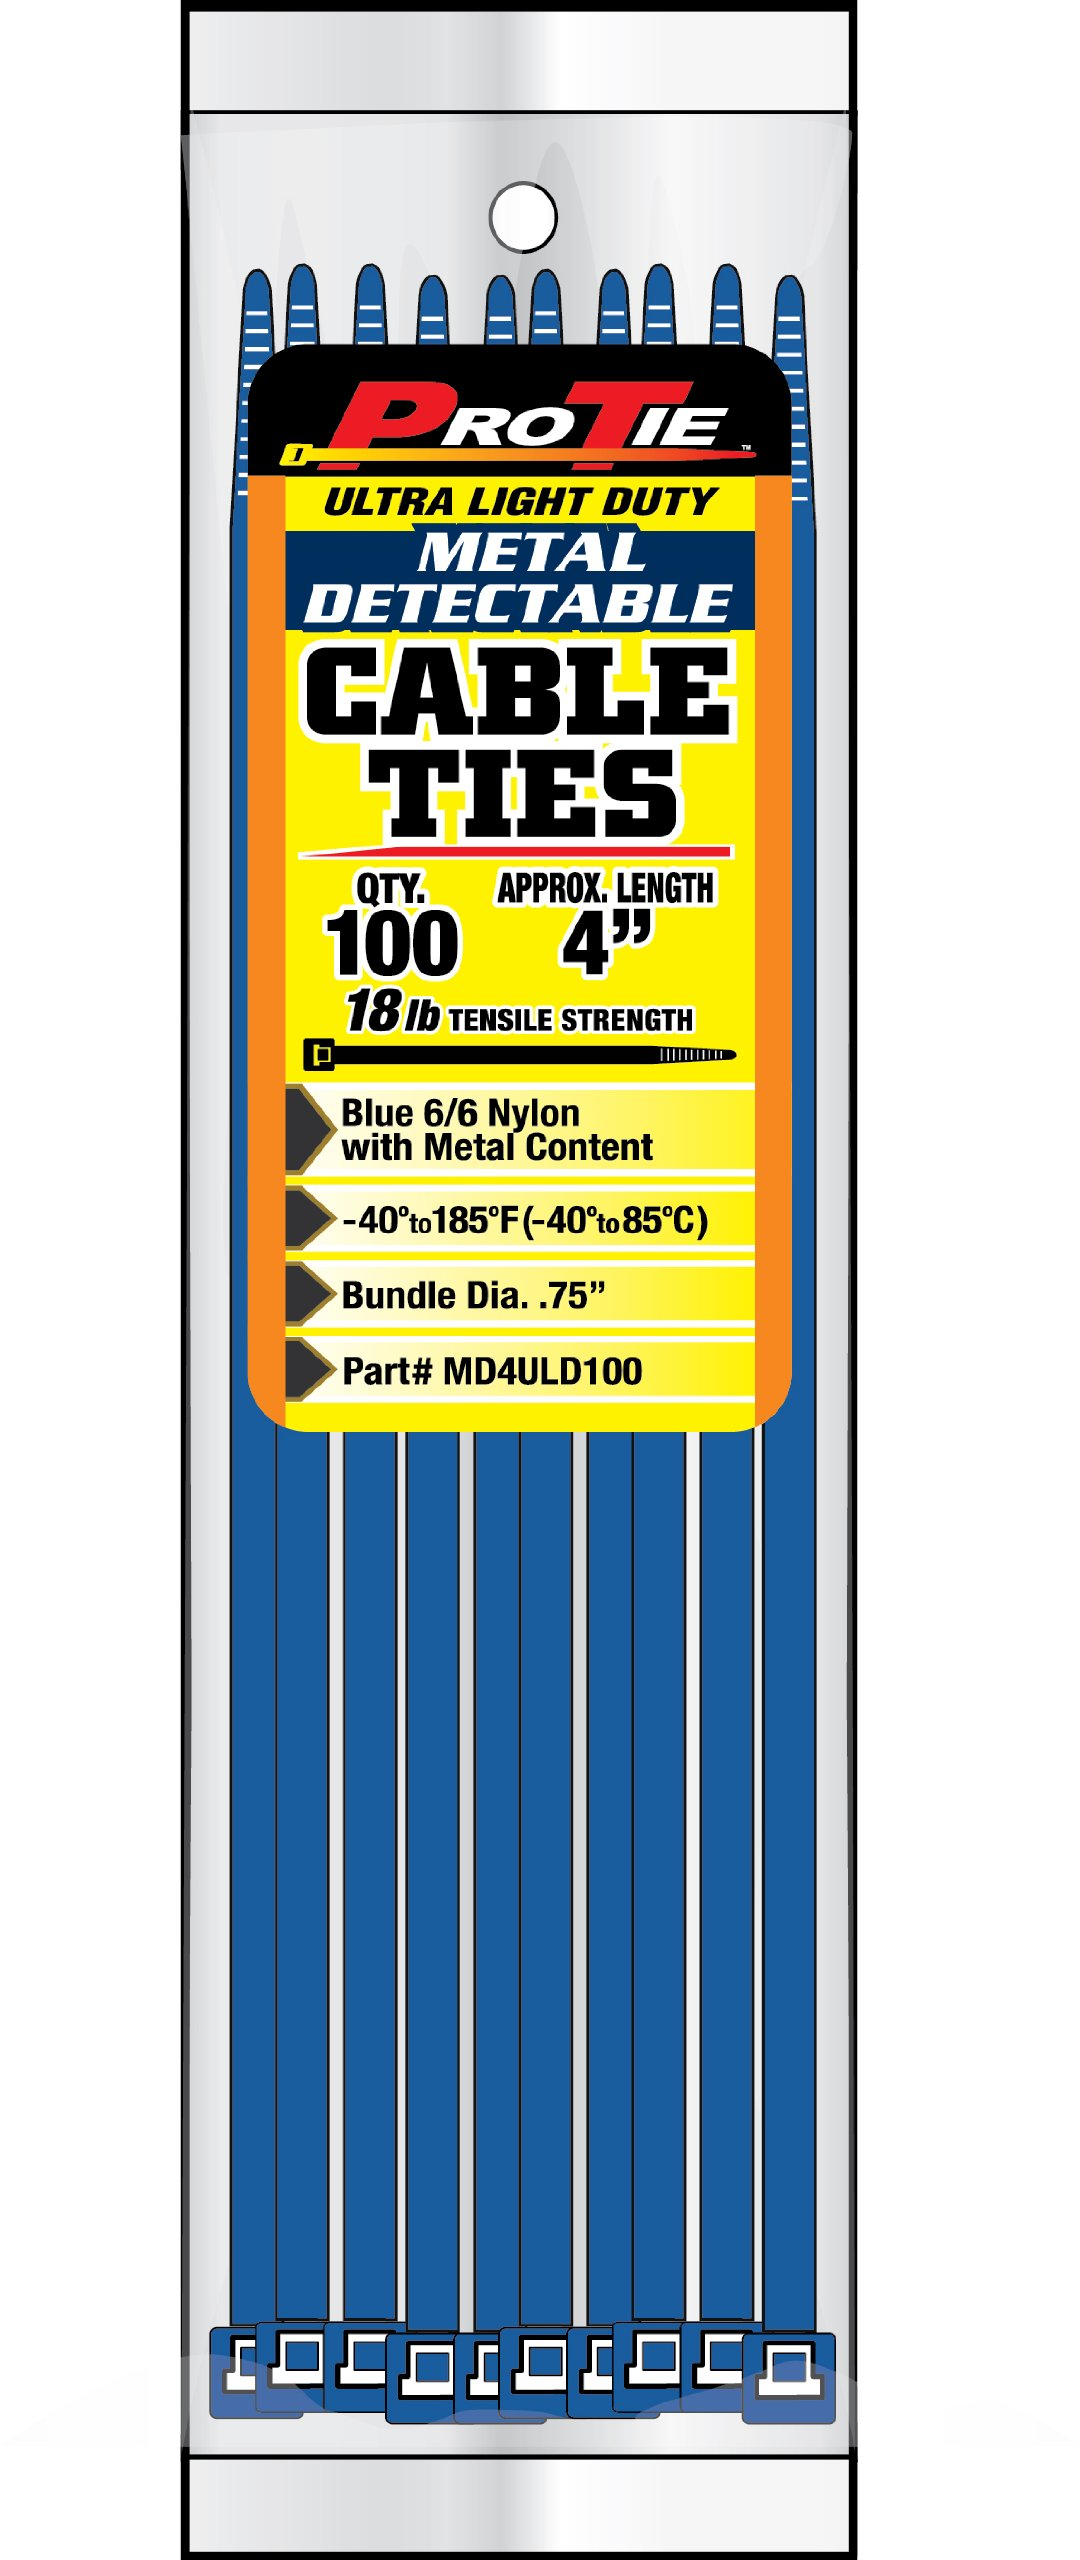 Pro Tie MD4ULD100 4-Inch Metal Detectable Ultra Light Duty Cable Ties, Blue, 100-Pack